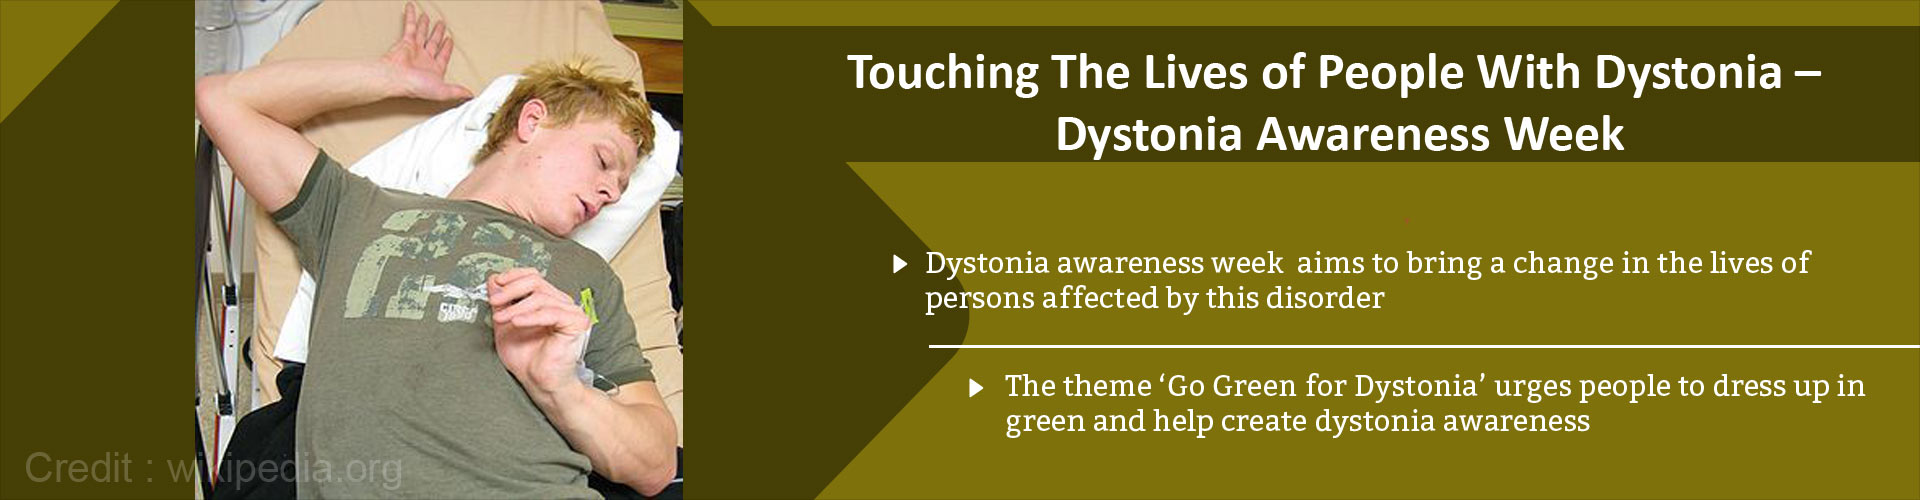 Dystonia Awareness Week - Go Green For Dystonia